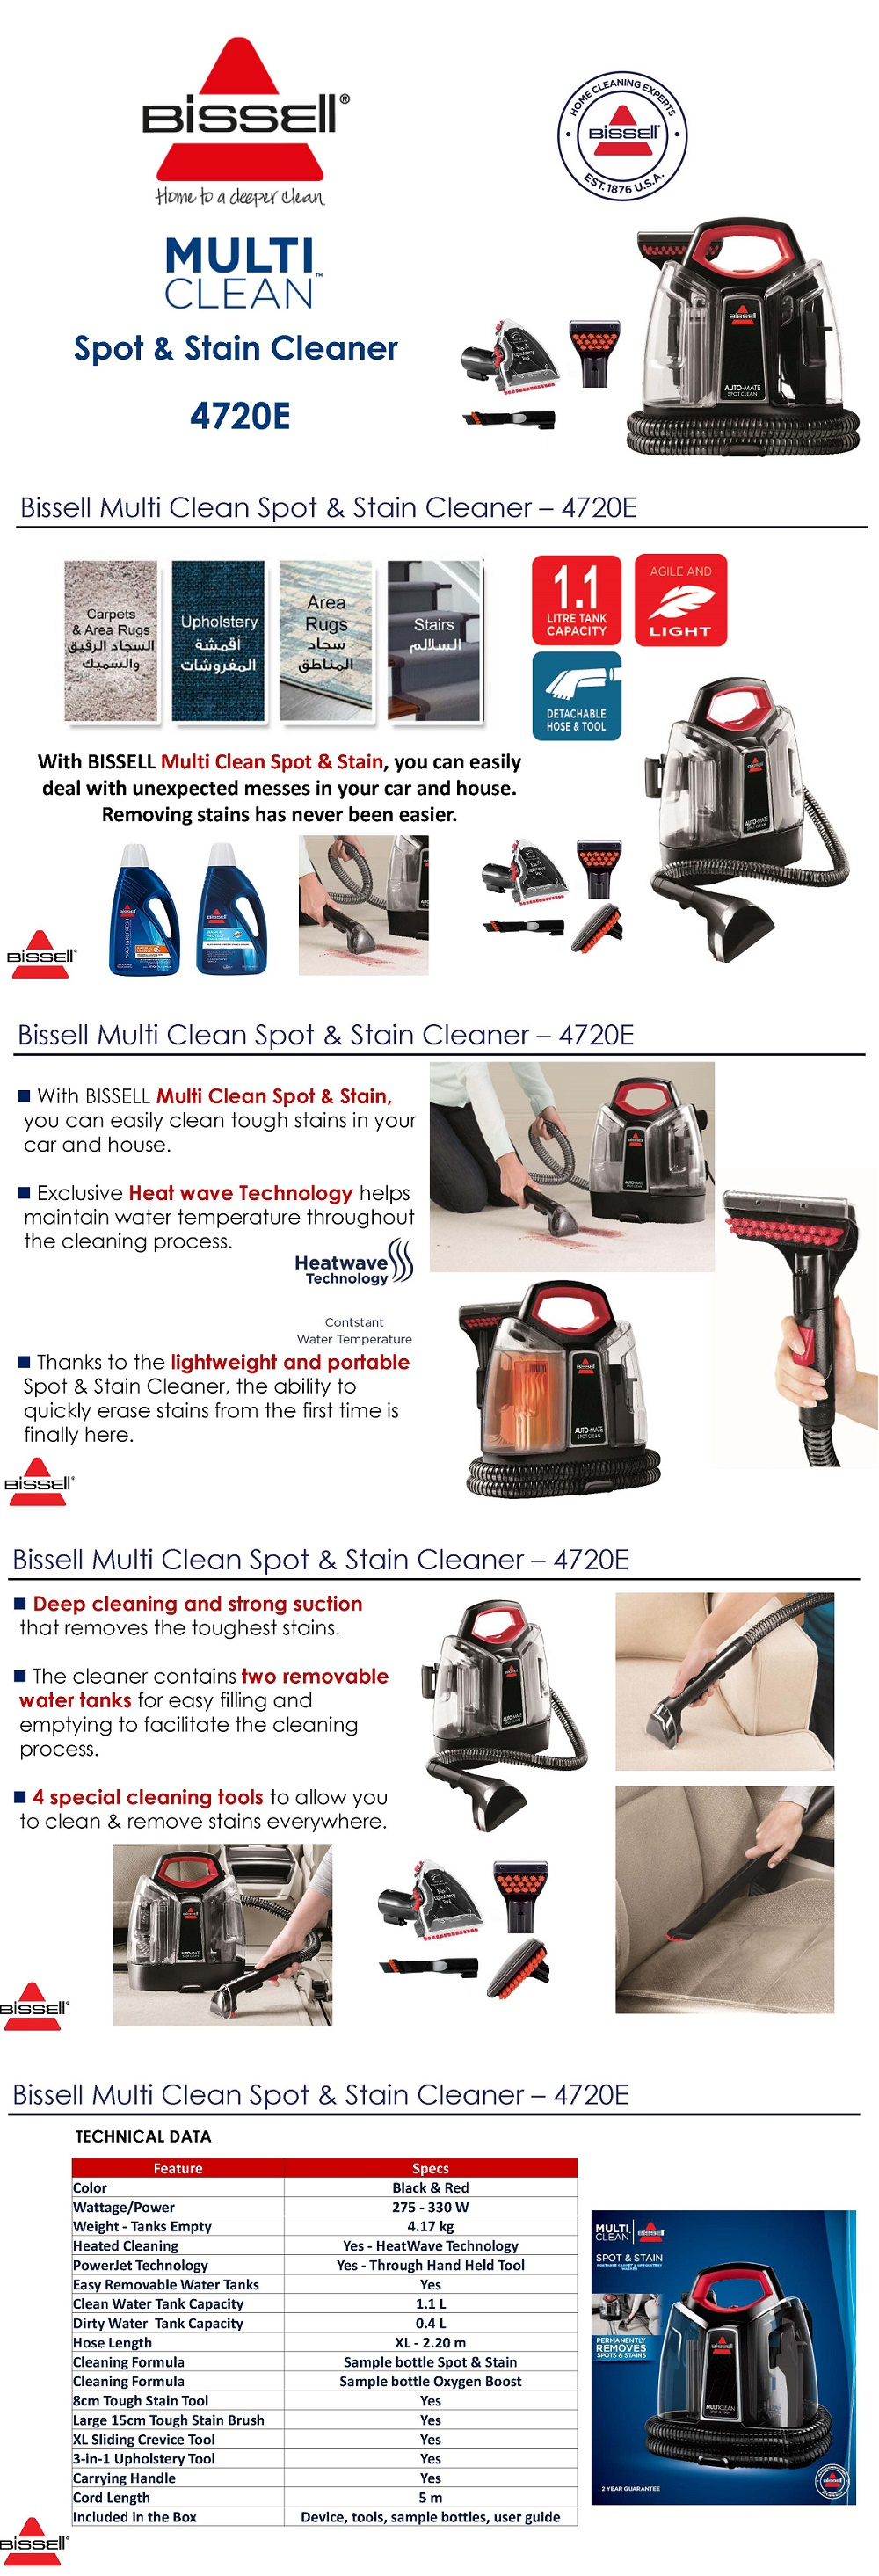 BISSELL Hand held Spot Cleaner 4720e